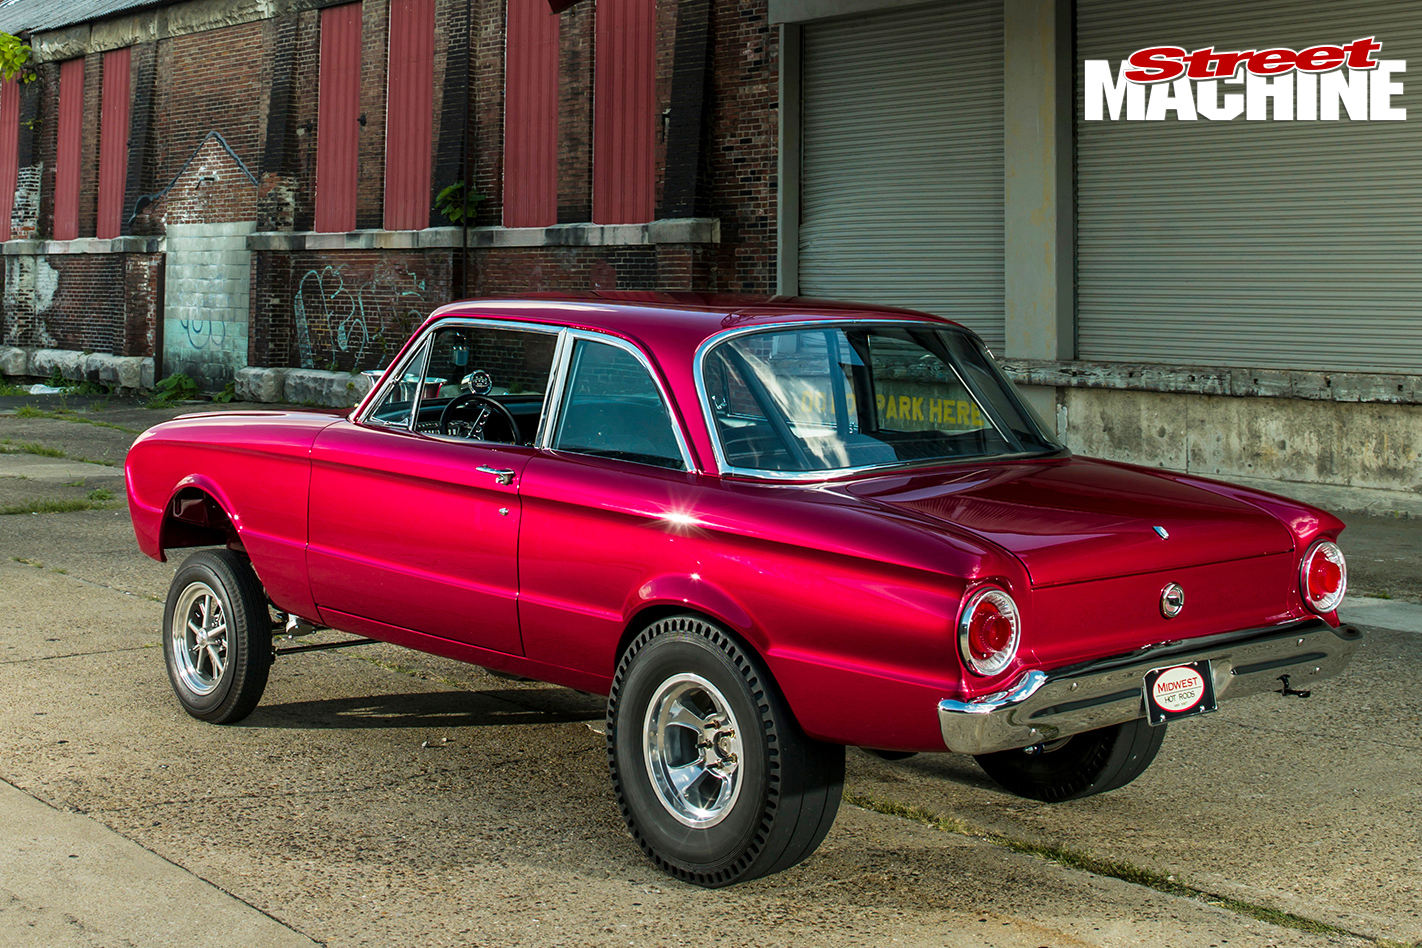 Ford -Falcon -gasser -side -rear